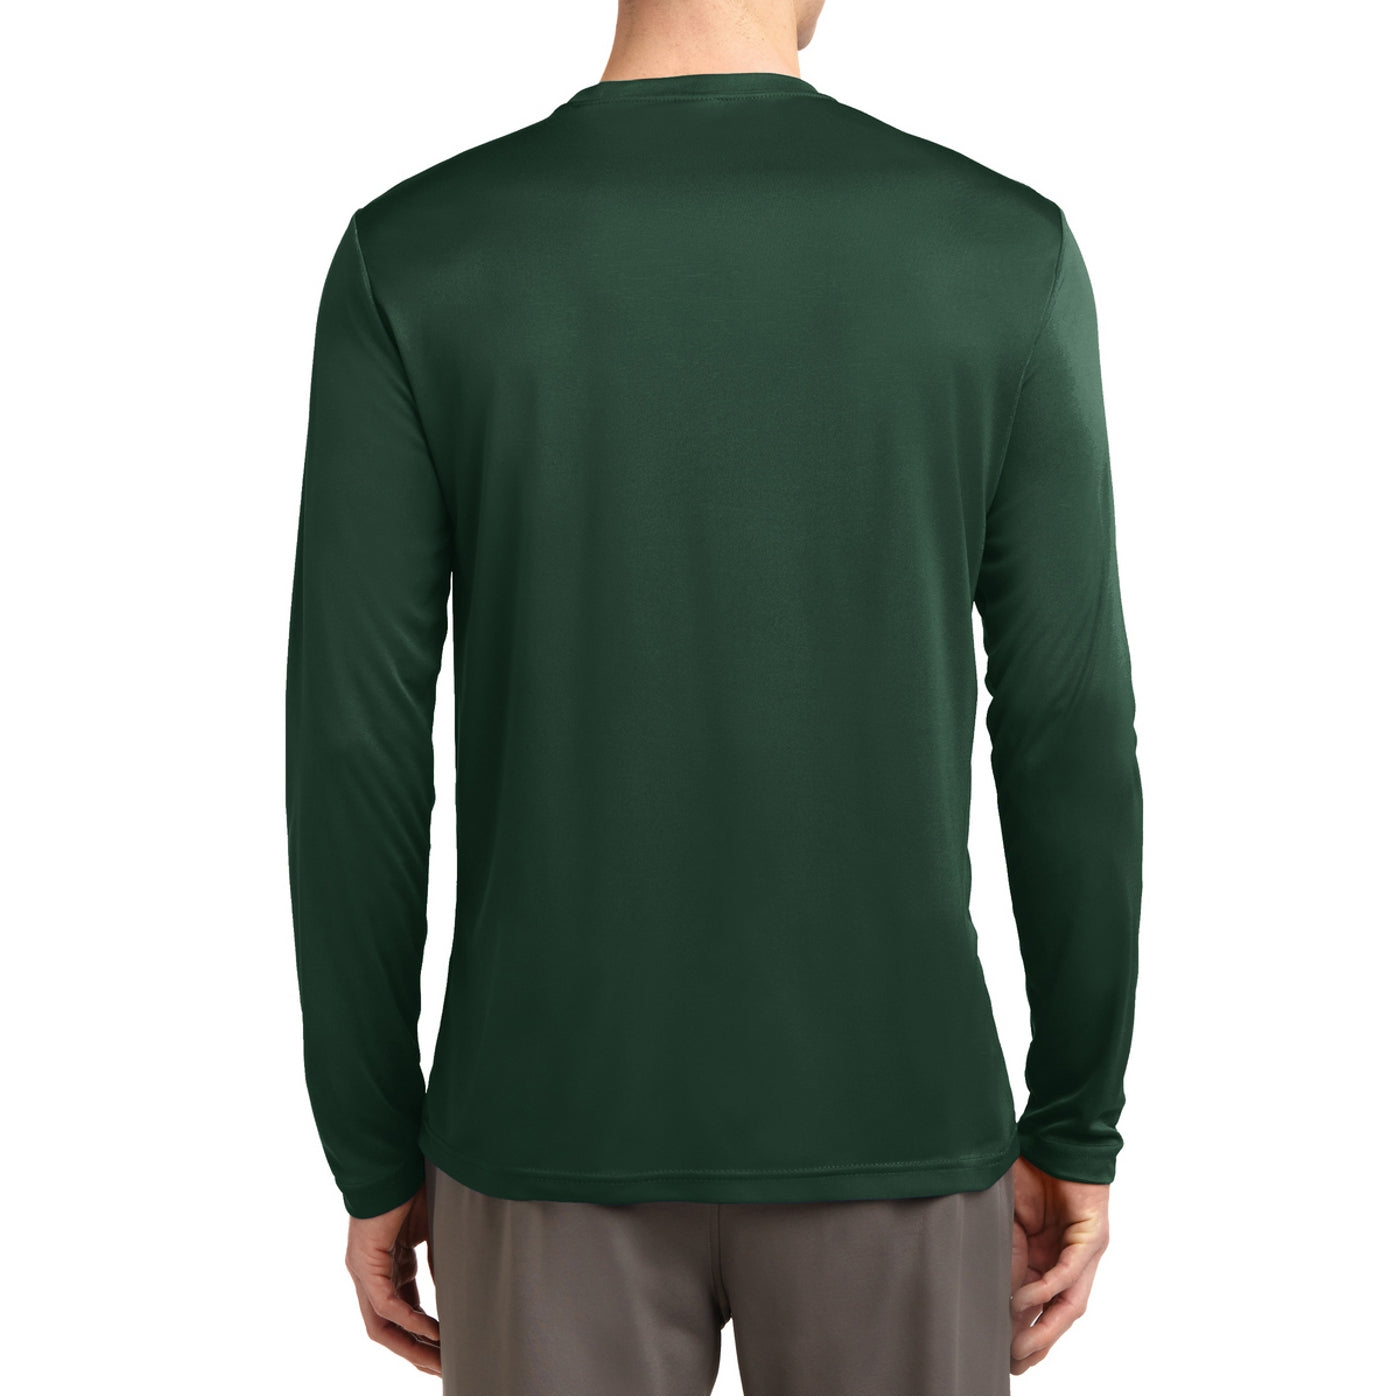 Men's Long Sleeve PosiCharge Competitor Tee - Forest Green